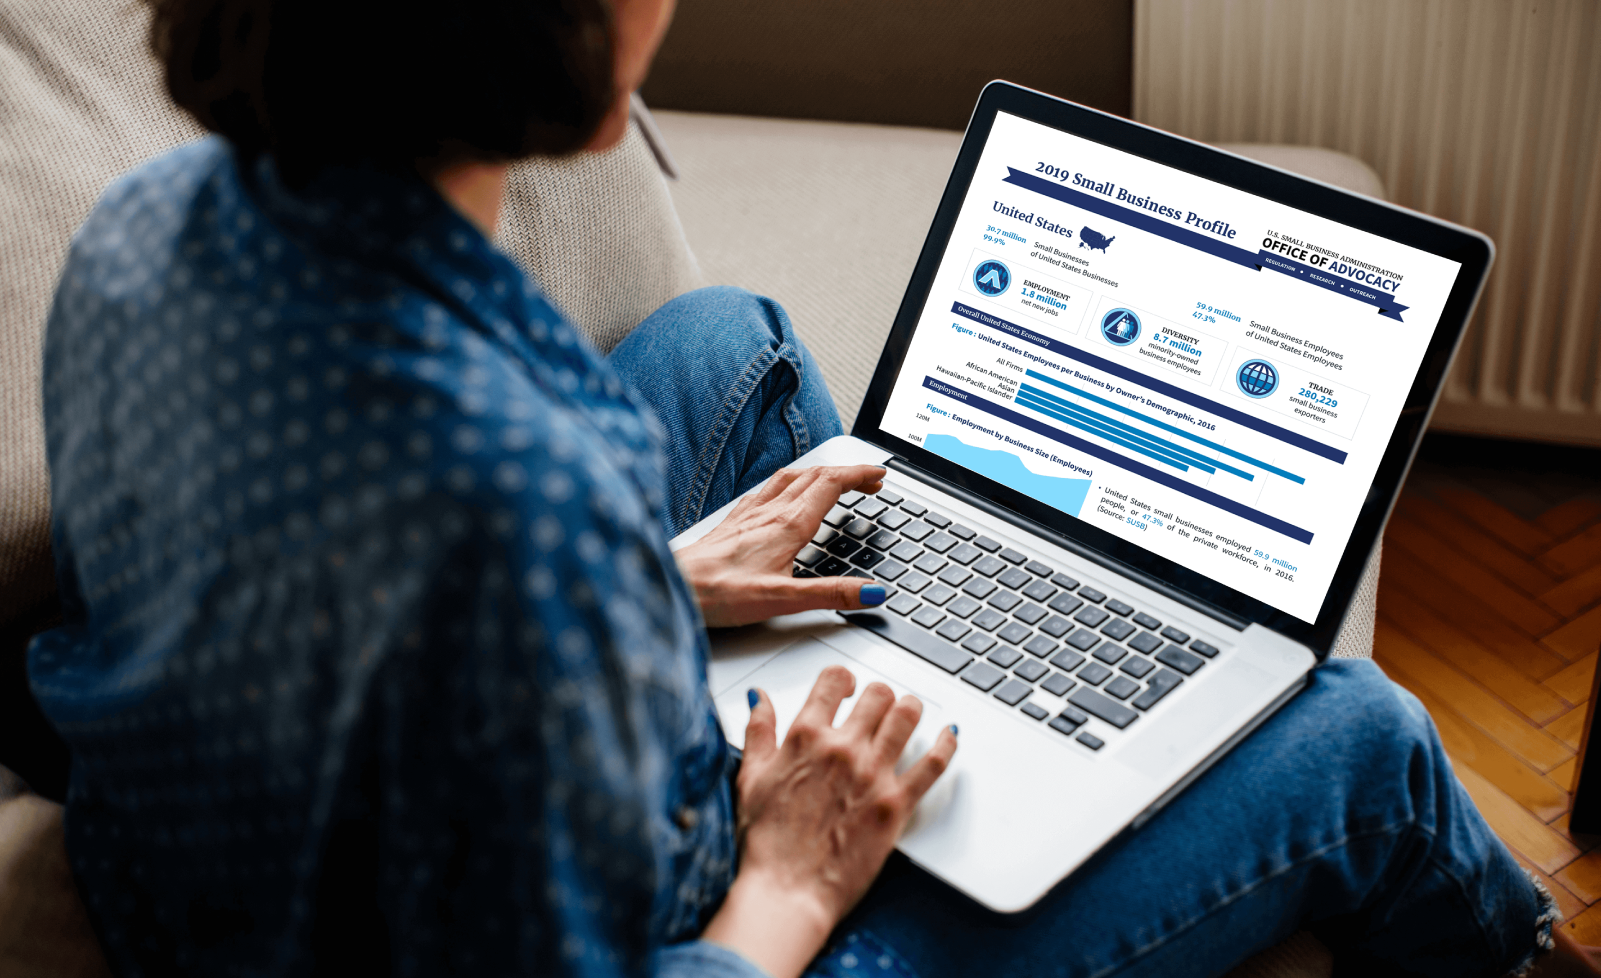 2019 Small Business Profiles For The States And Territories Sba S Office Of Advocacy